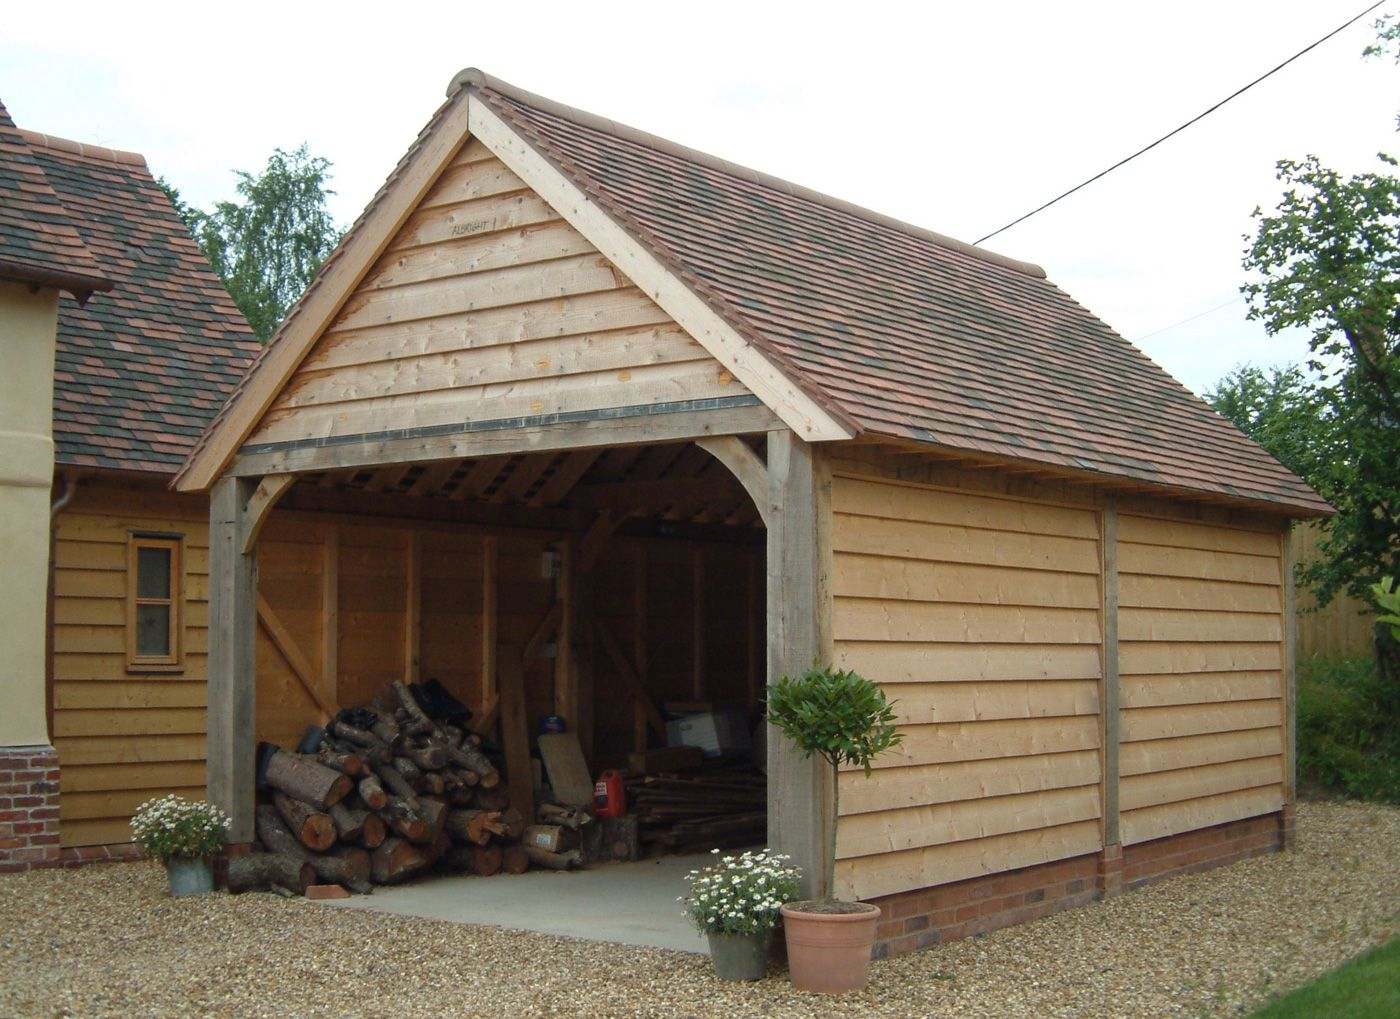 Garages And Carports Border Oak Oak Framed Houses Oak